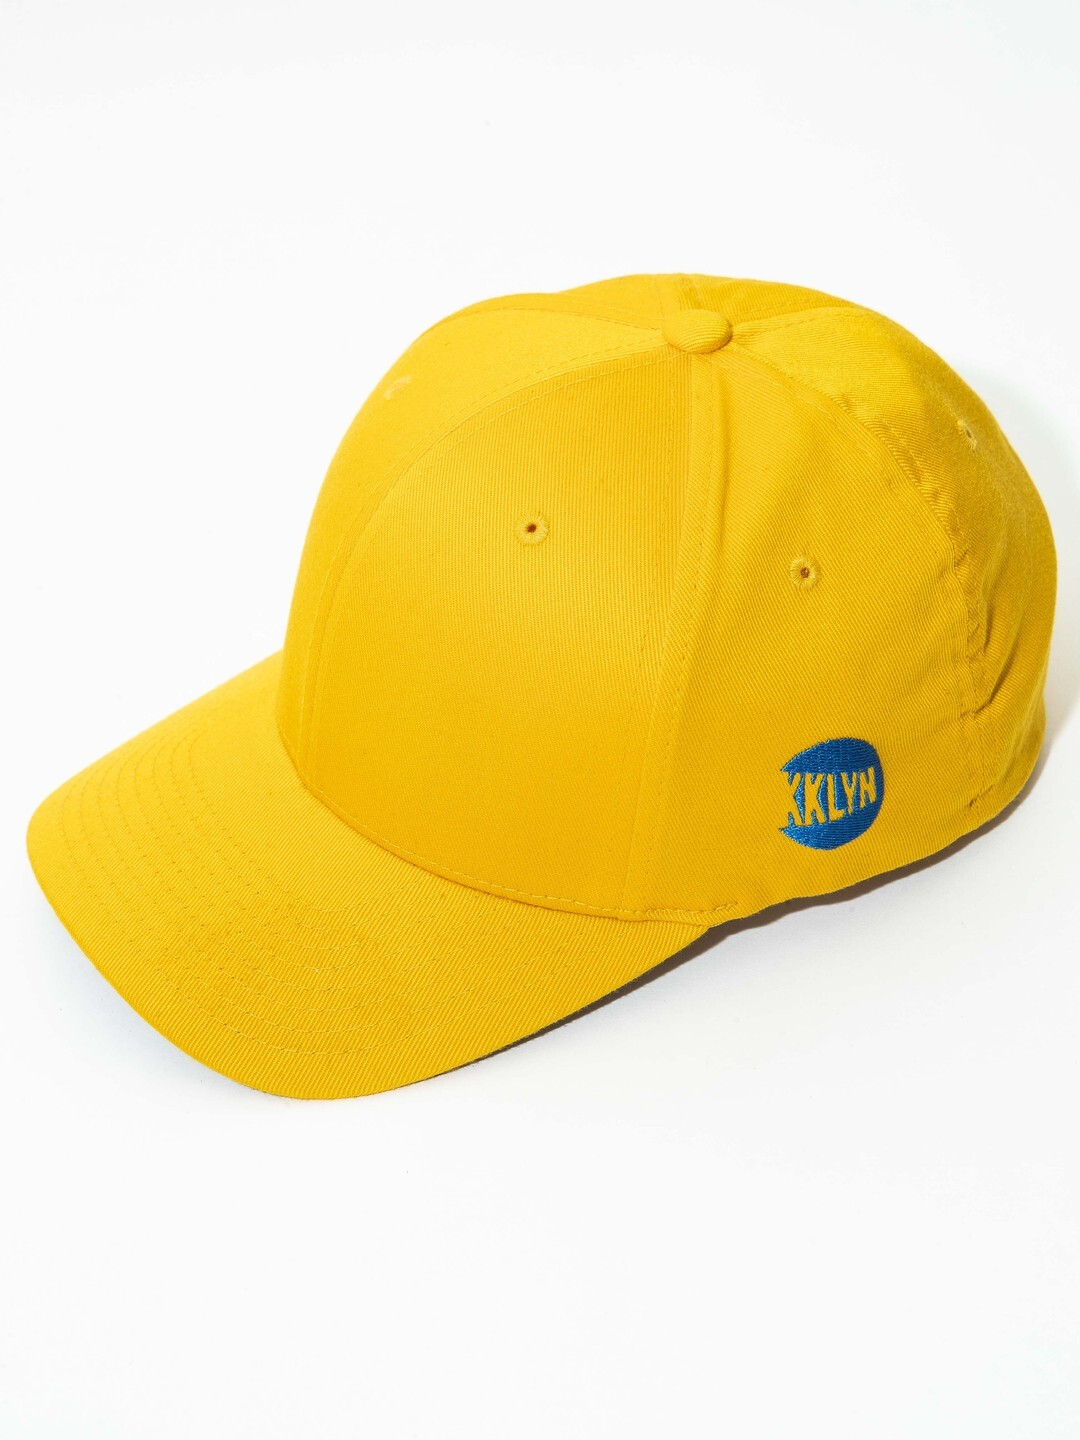 """KKLYN"" New York metro Cap -Yellow"